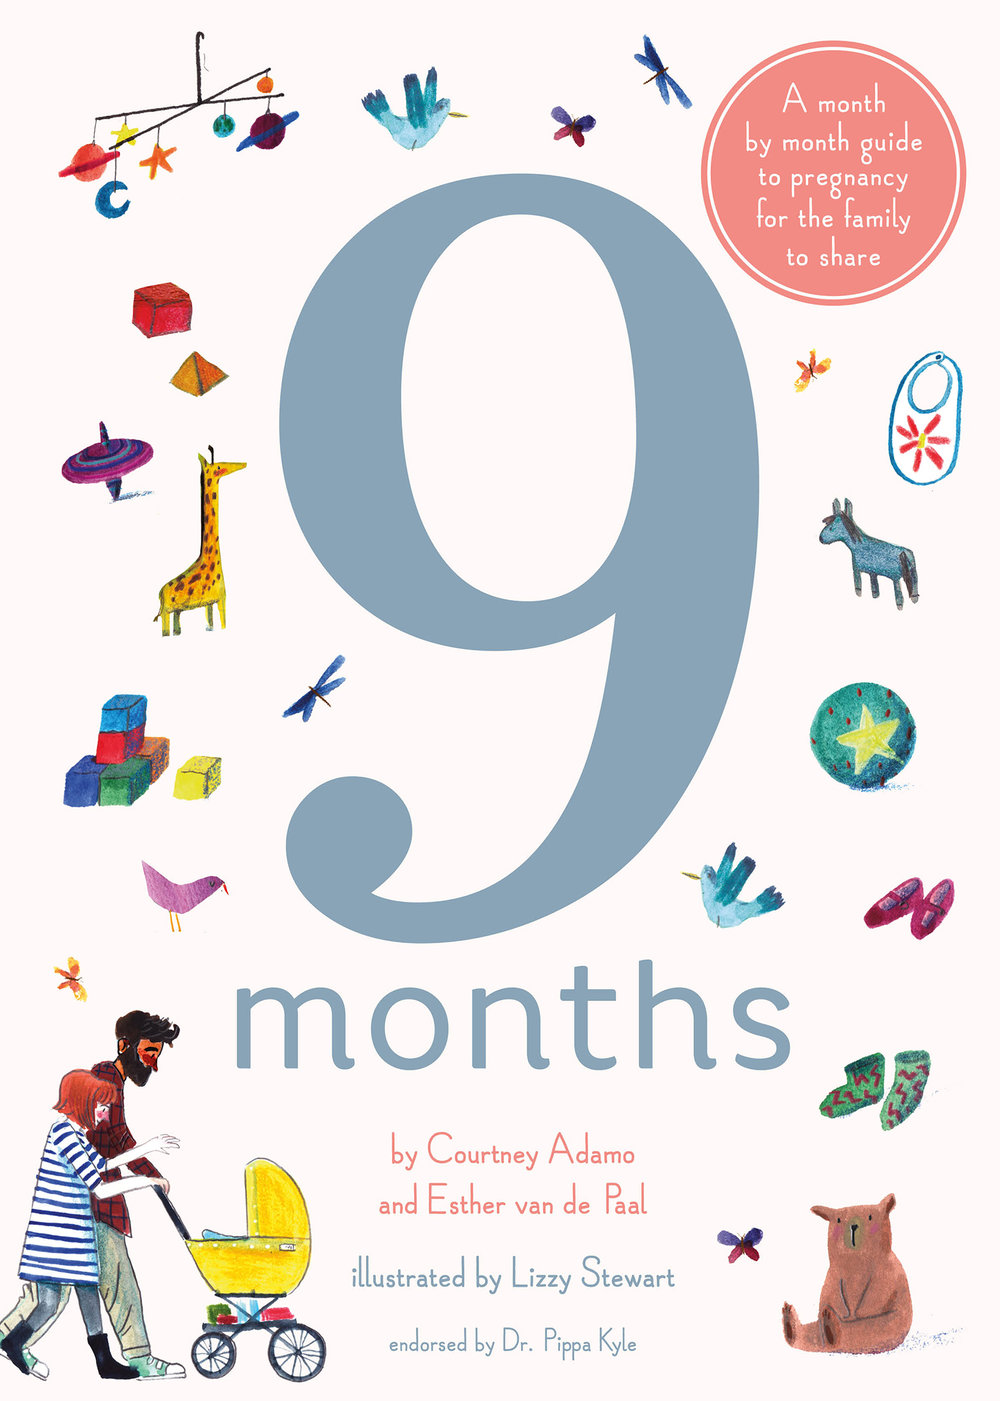 9 MONTHS by Courtney Adamo and Esther van de Paal, illustrated by Lizzy Stewart – Frances Lincoln Children's Books, 2017 ages 2 to 10 years / picture books + nonfiction, s.t.e.m.